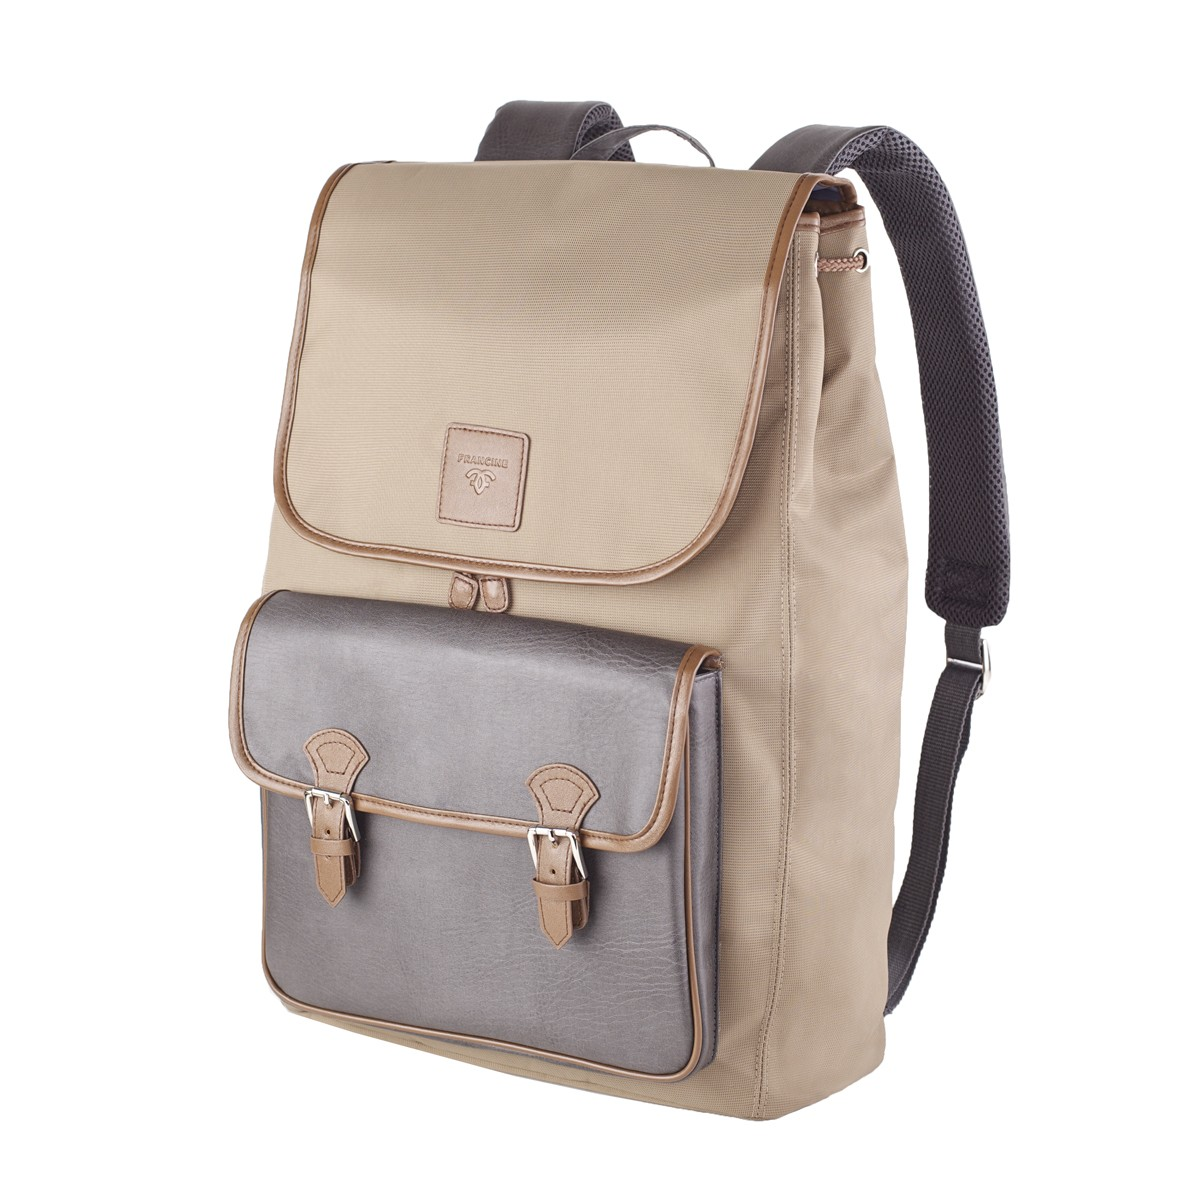 Cool Backpacks For Women Whmj8JBY